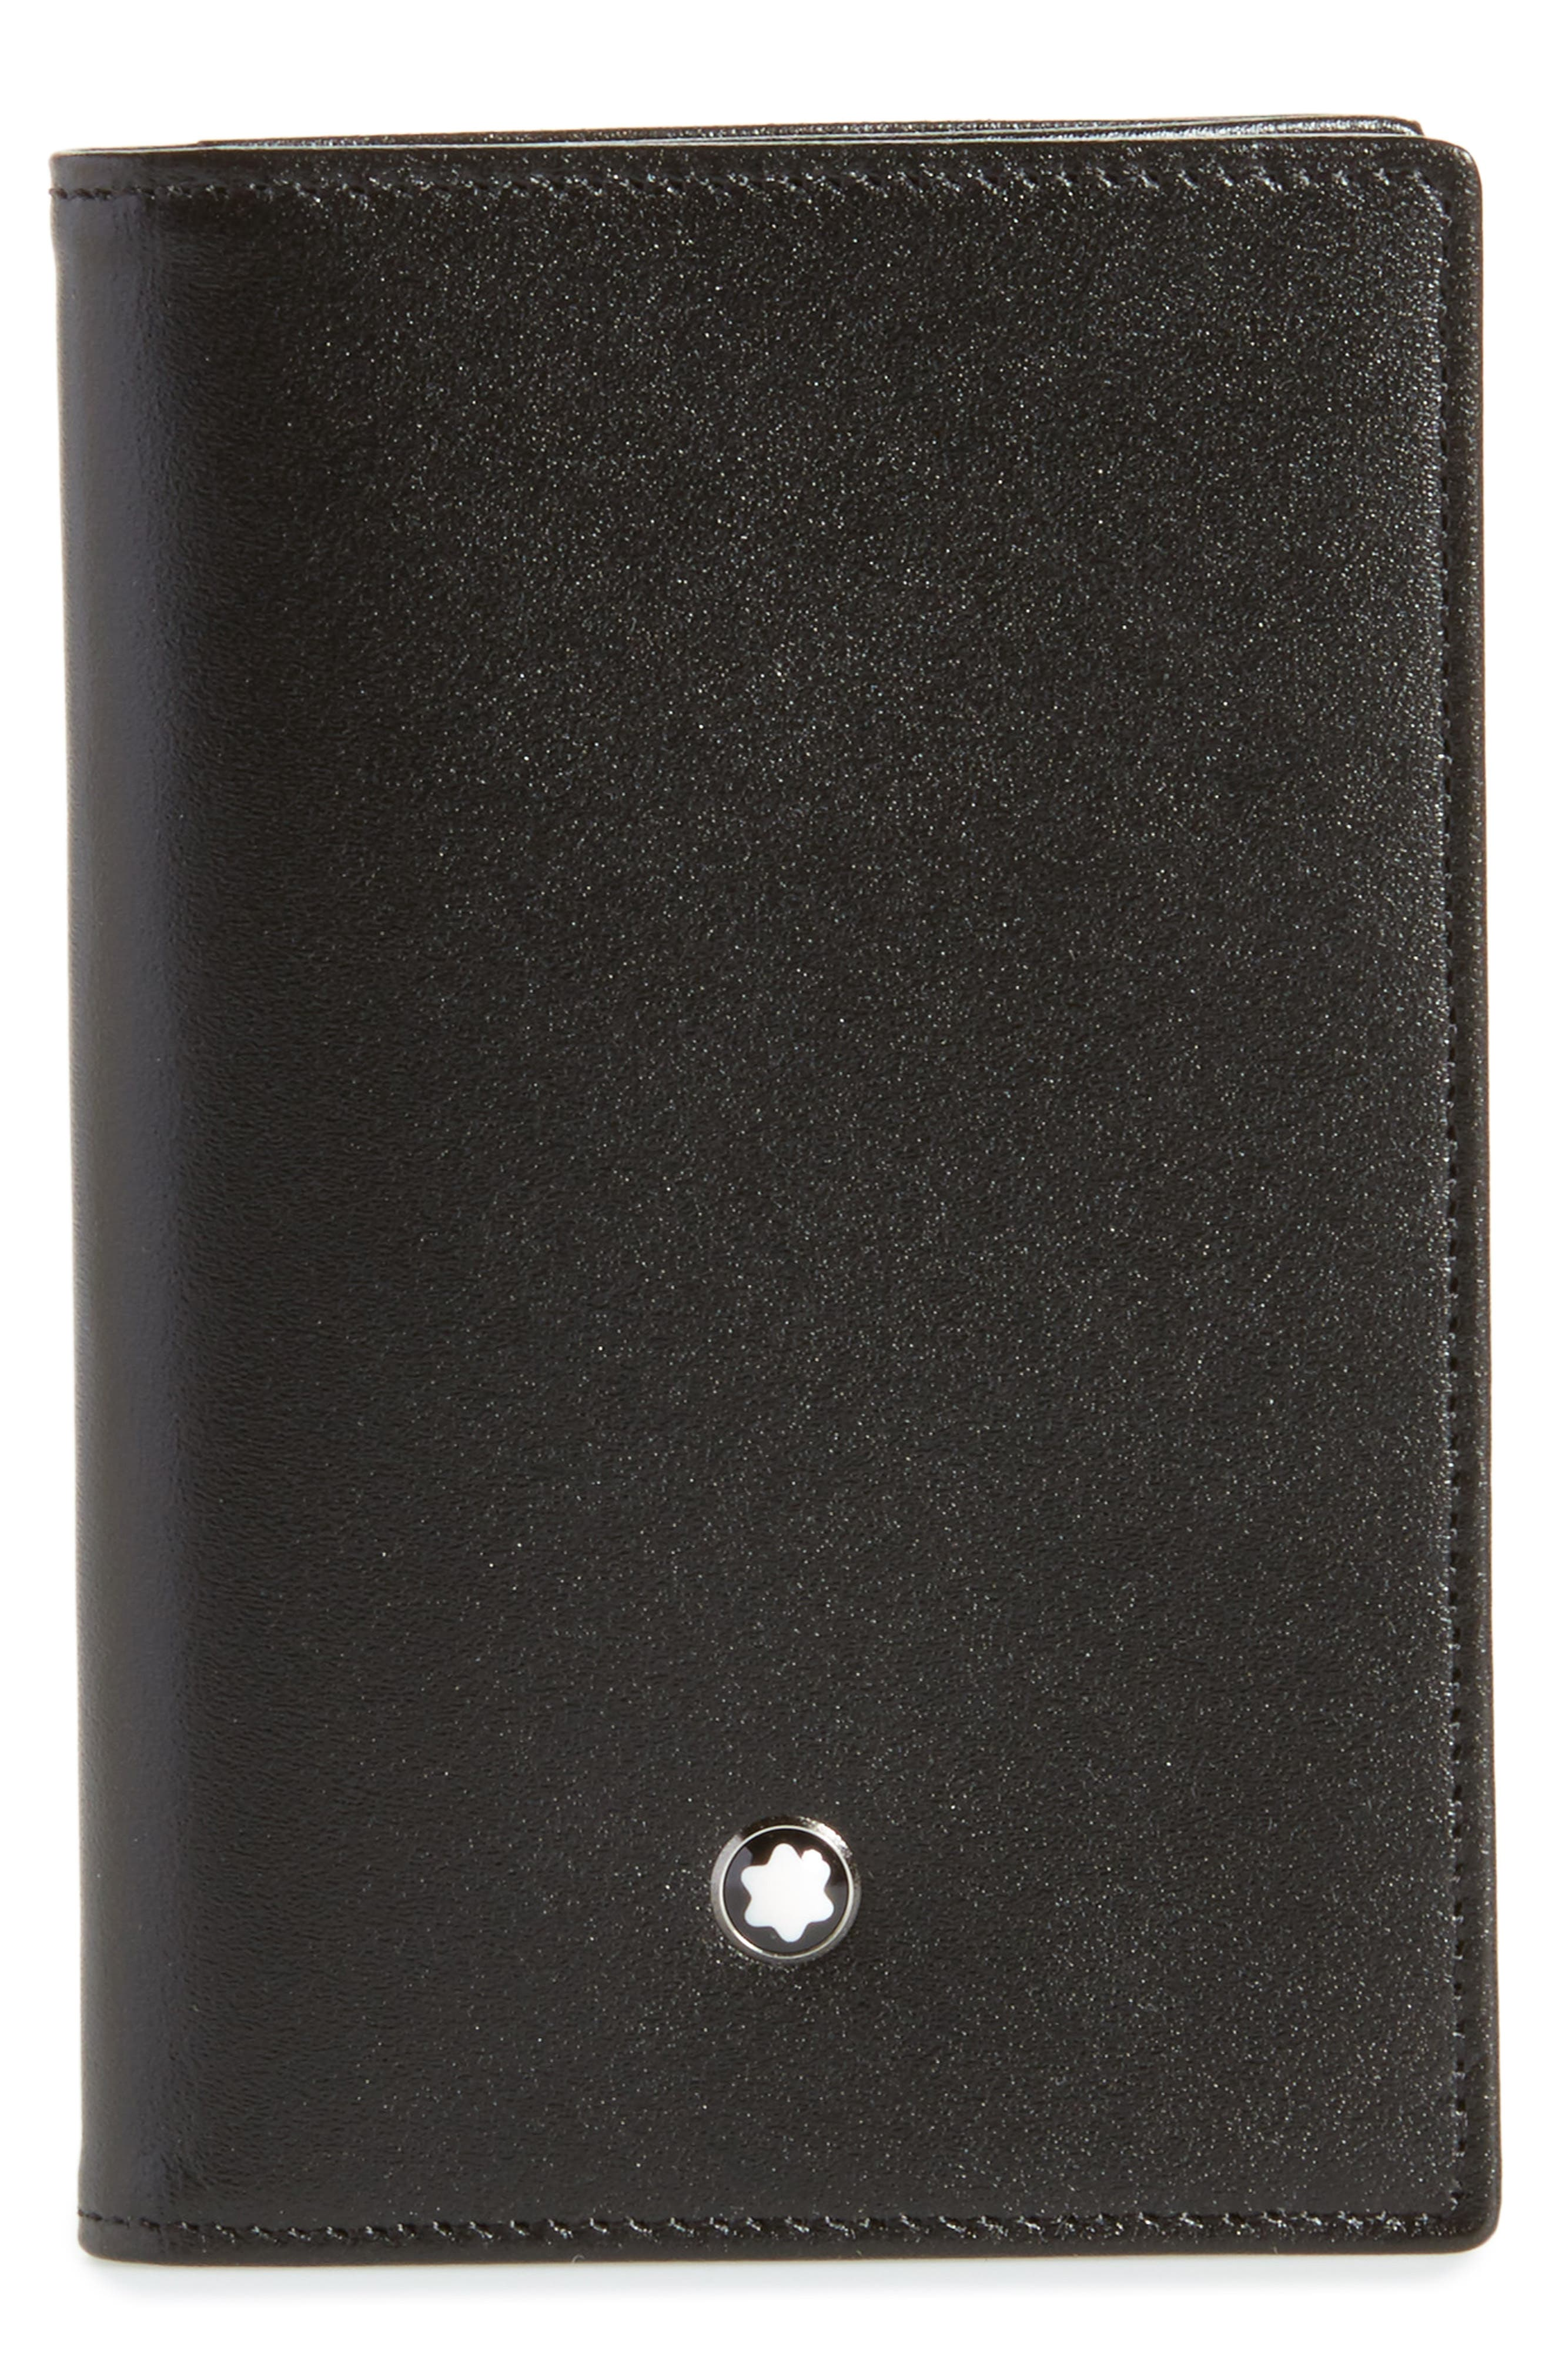 Alternate Image 1 Selected - MONTBLANC Meisterstück Leather Business Card Case